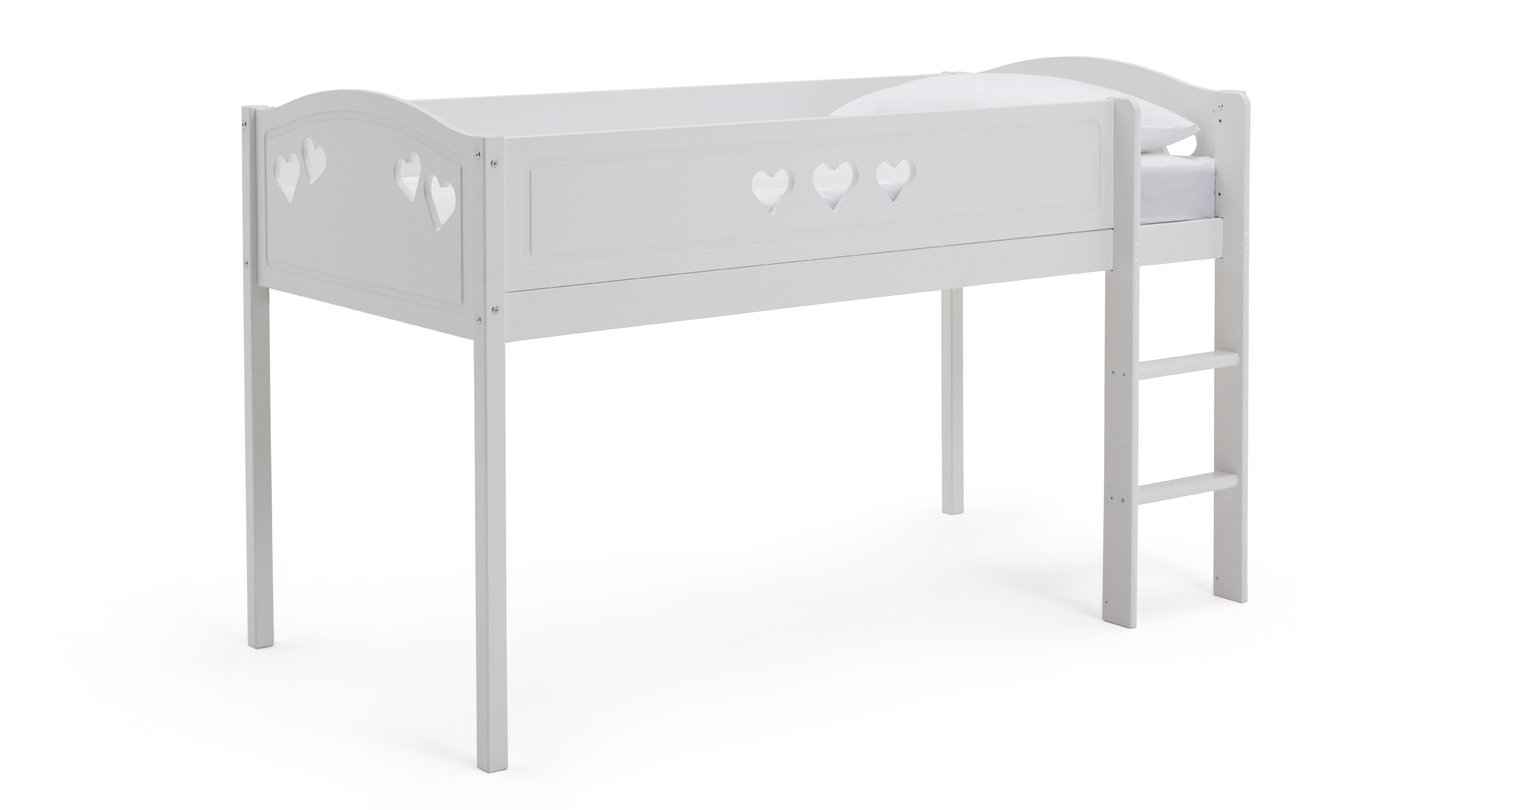 Argos Home Mia White Mid Sleeper Bed Frame